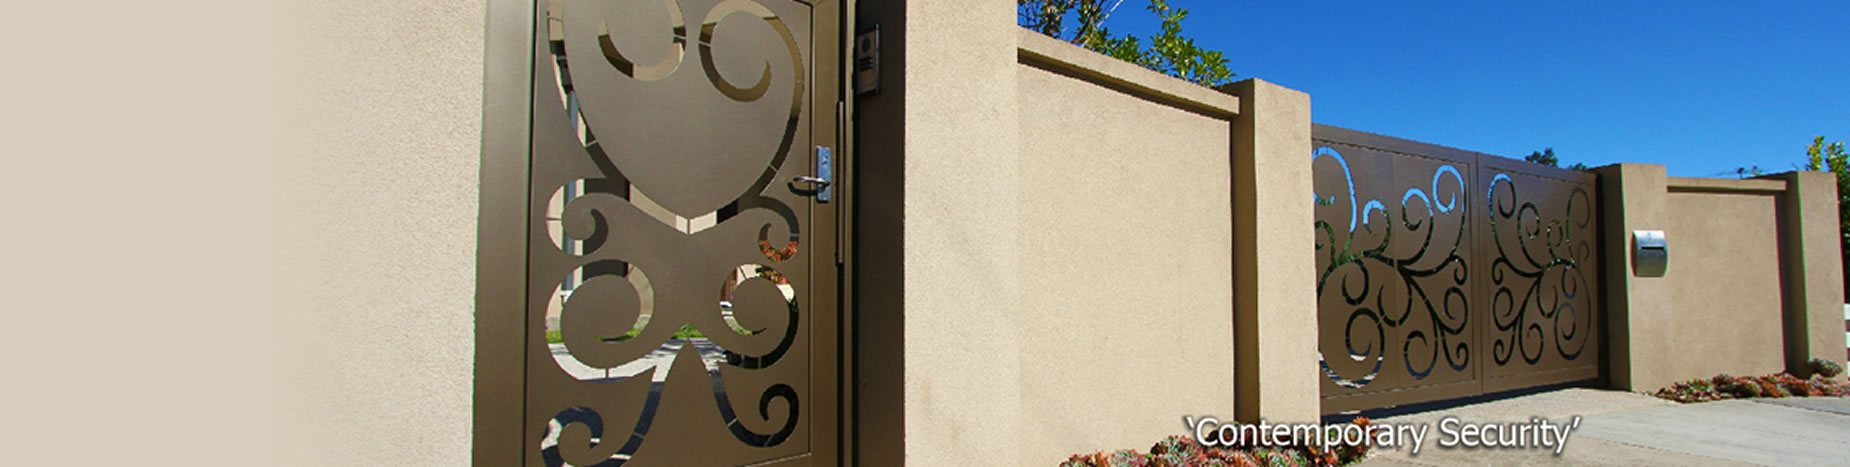 Shieldguard Security Doors - Contemporary Security